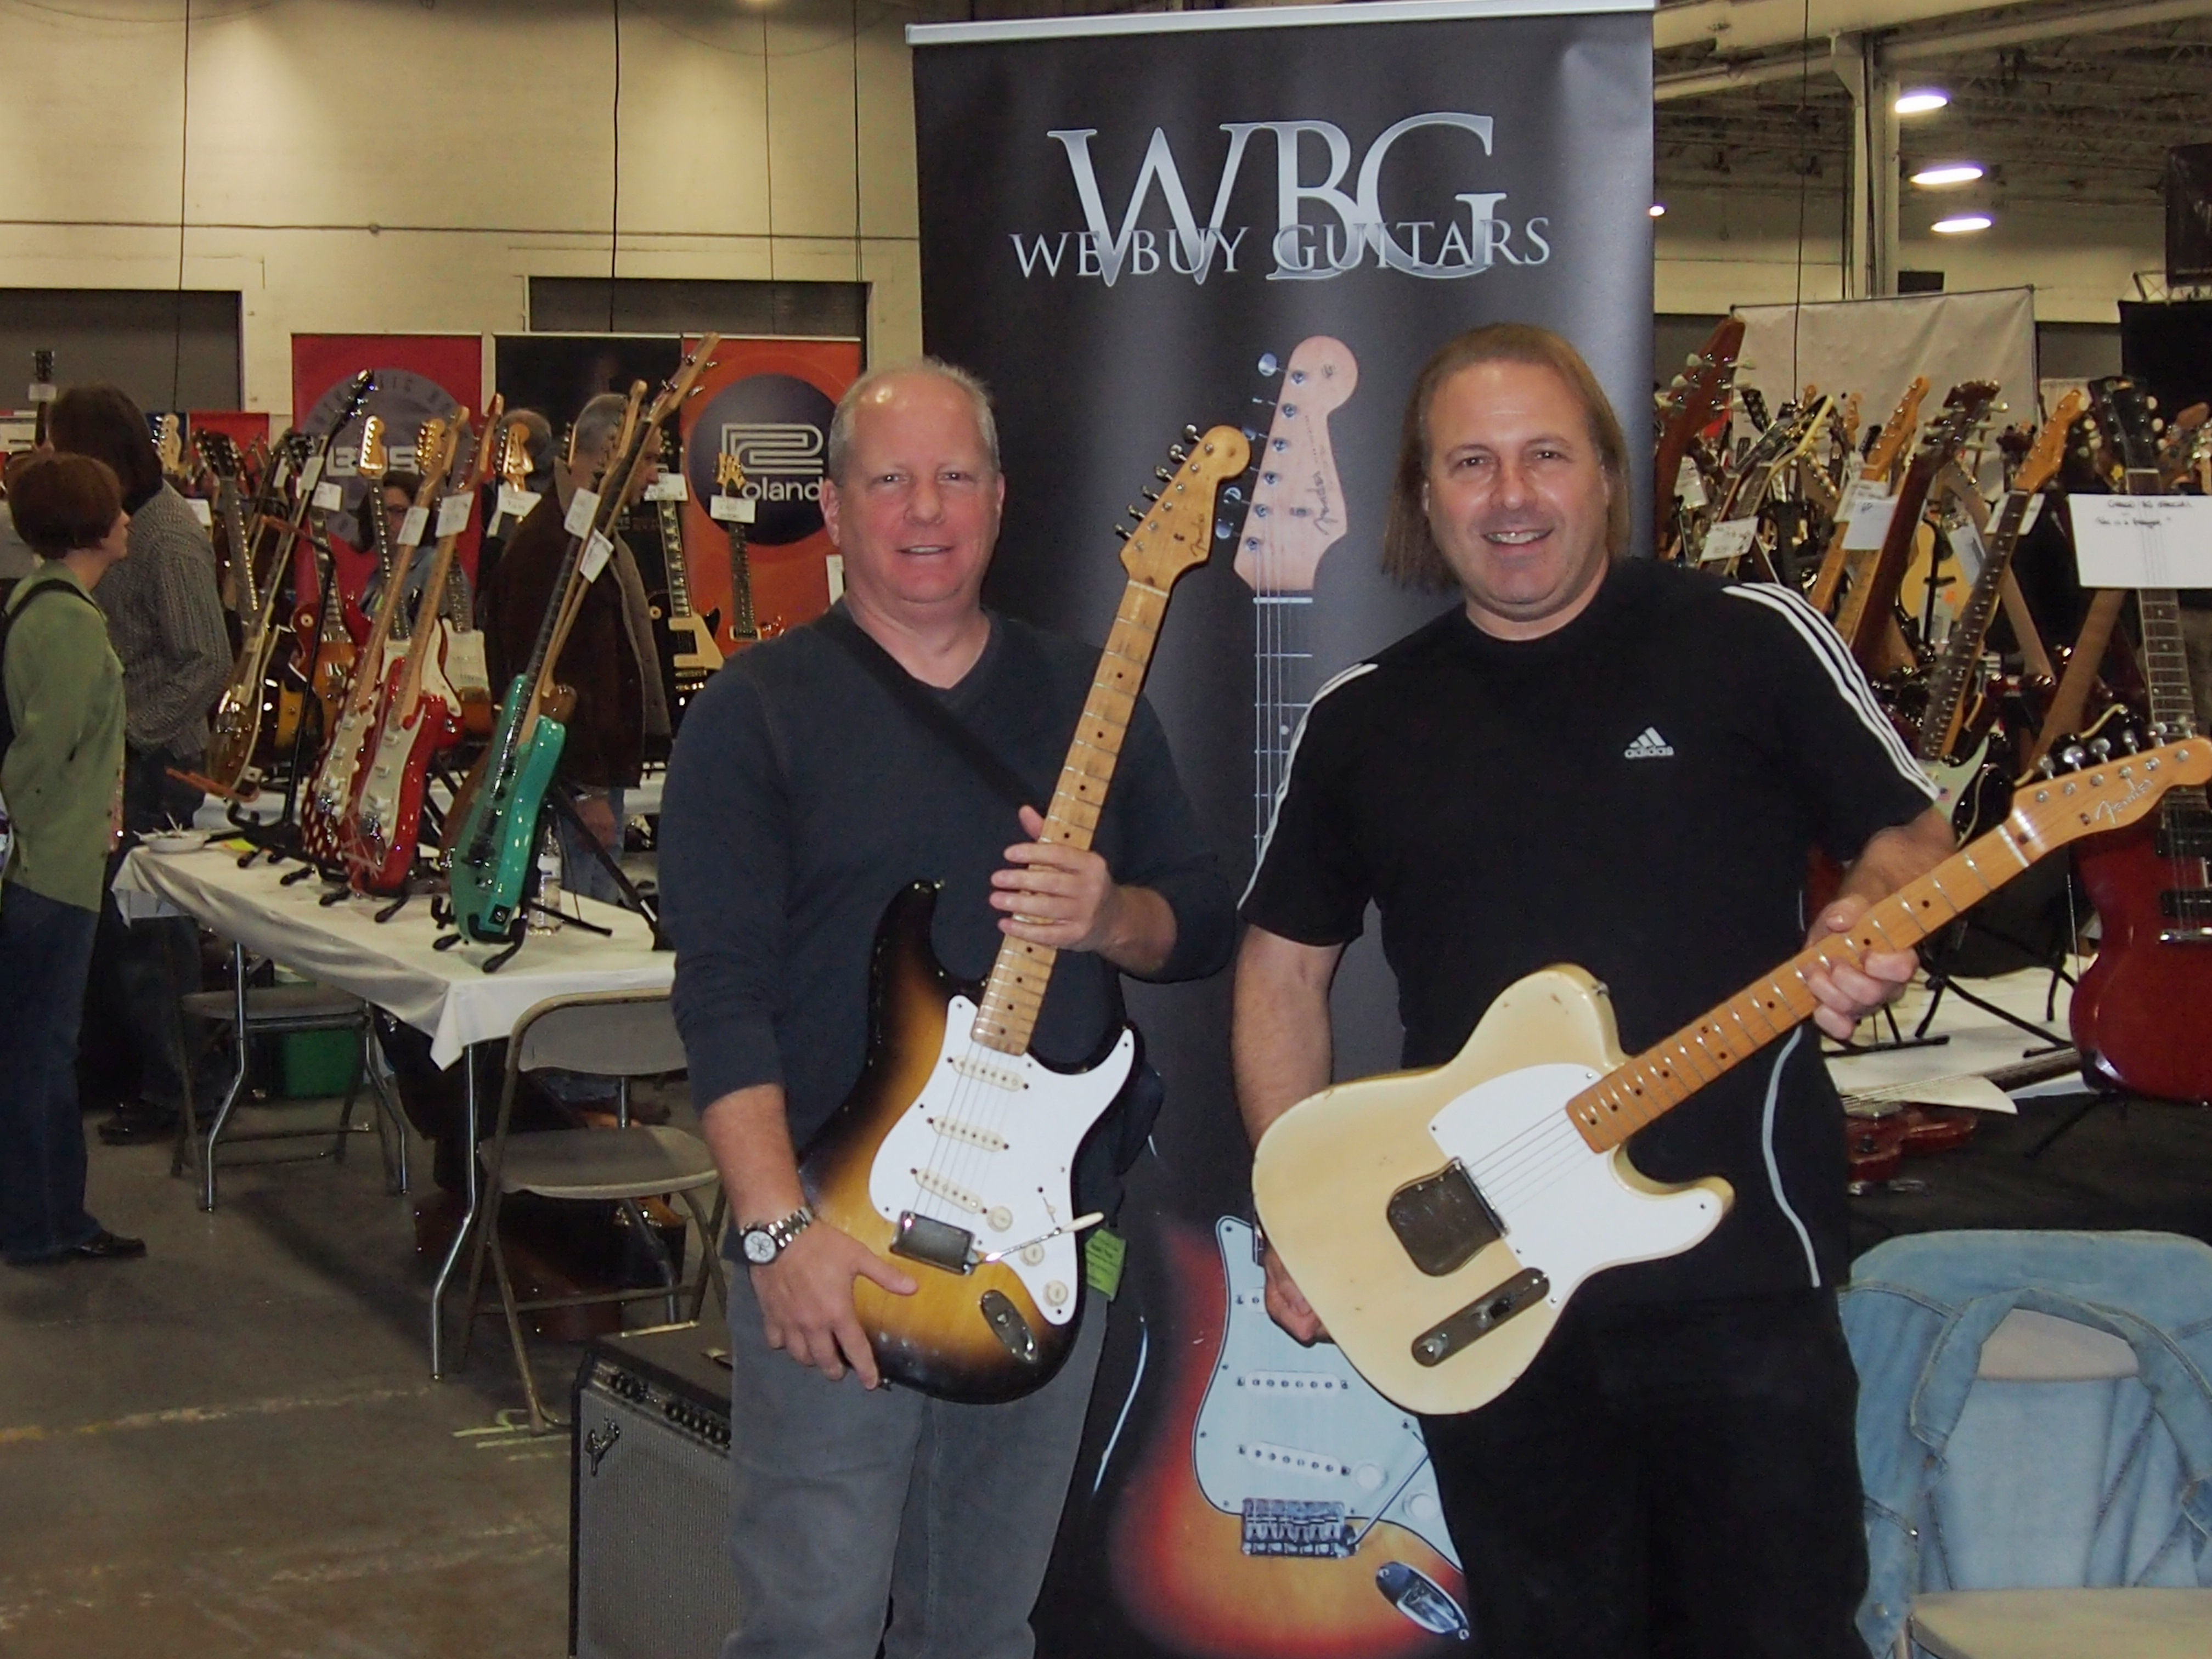 Rich and from We Buy Guitars